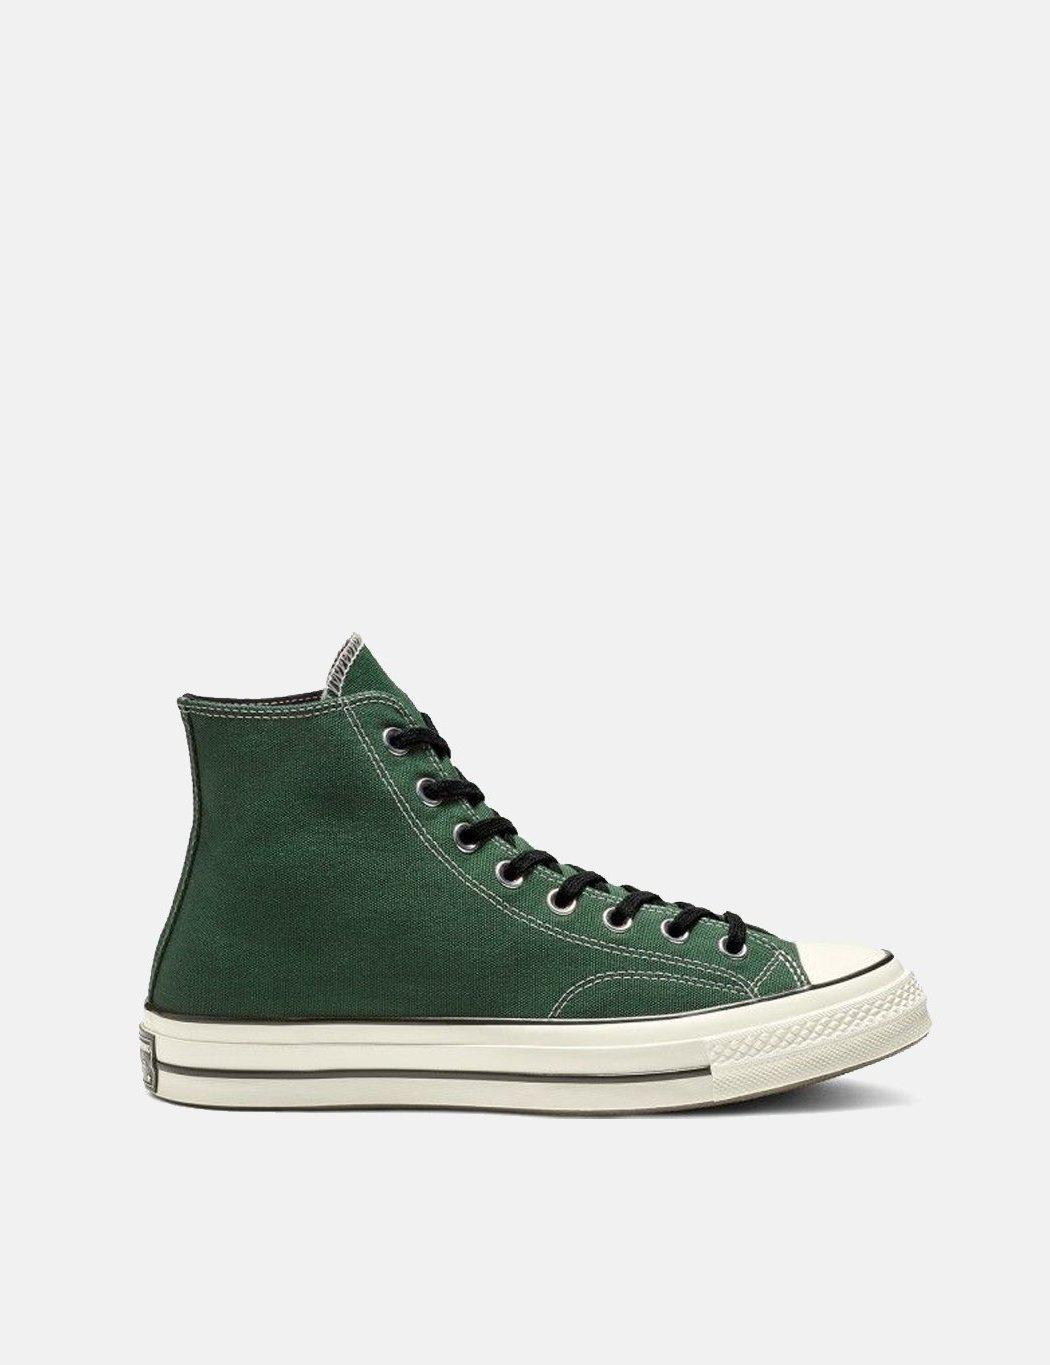 aa96322bbfce Lyst - Converse 70 s Chuck Hi 163332c (canvas) in Green for Men